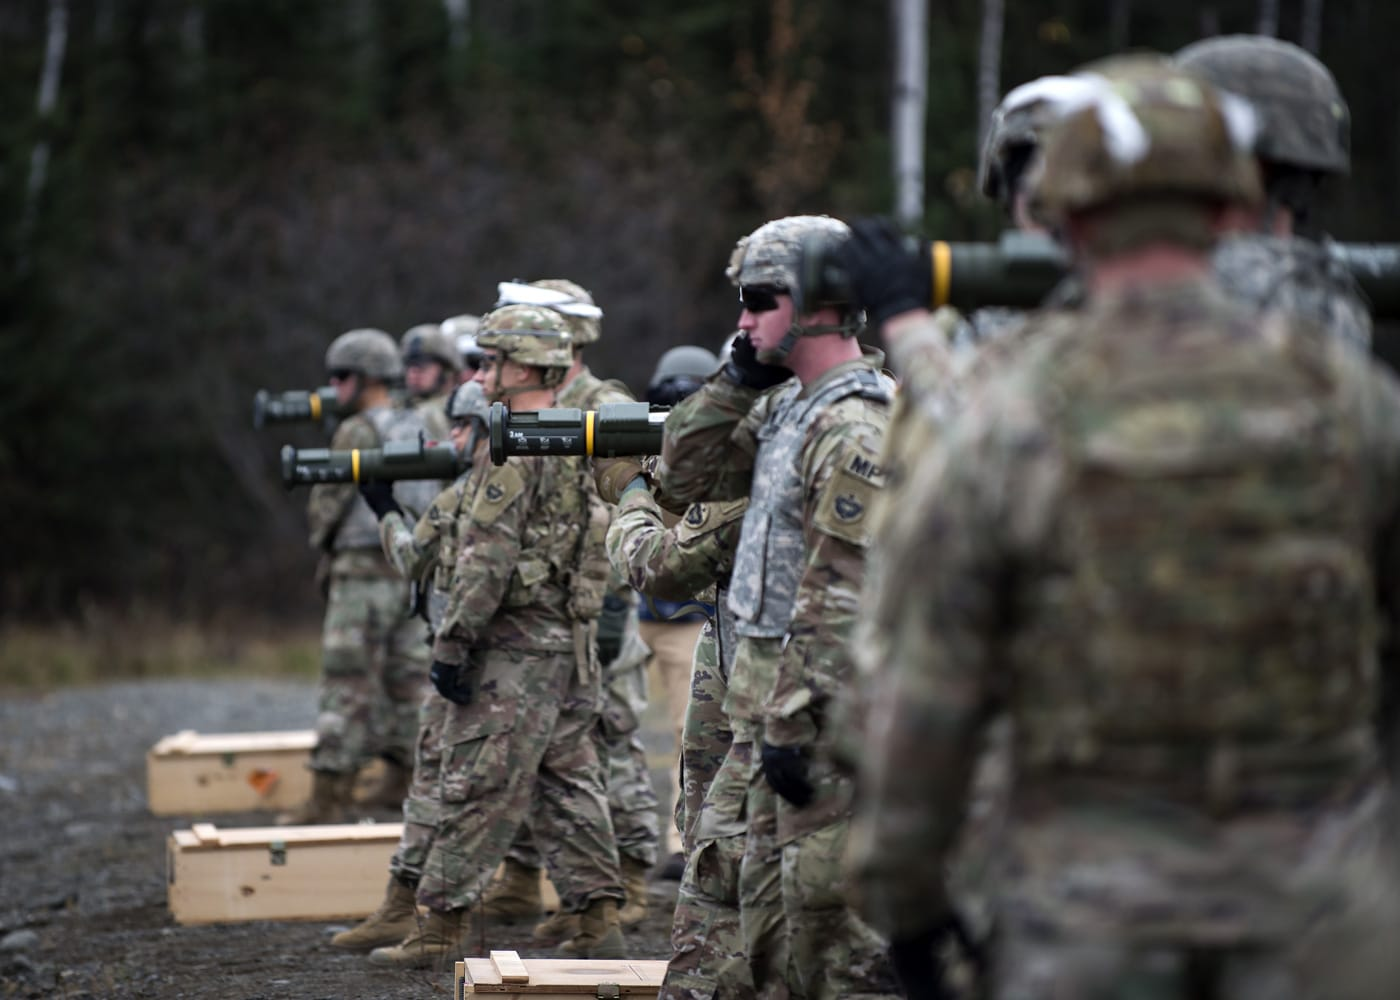 Soldiers assigned to the 109th Transportation Company, 17th Combat Sustainment Support Battalion, U.S. Army Alaska, fire the M136E1 AT4-CS confined space light anti-armor weapon at Joint Base Elmendorf-Richardson, Alaska.